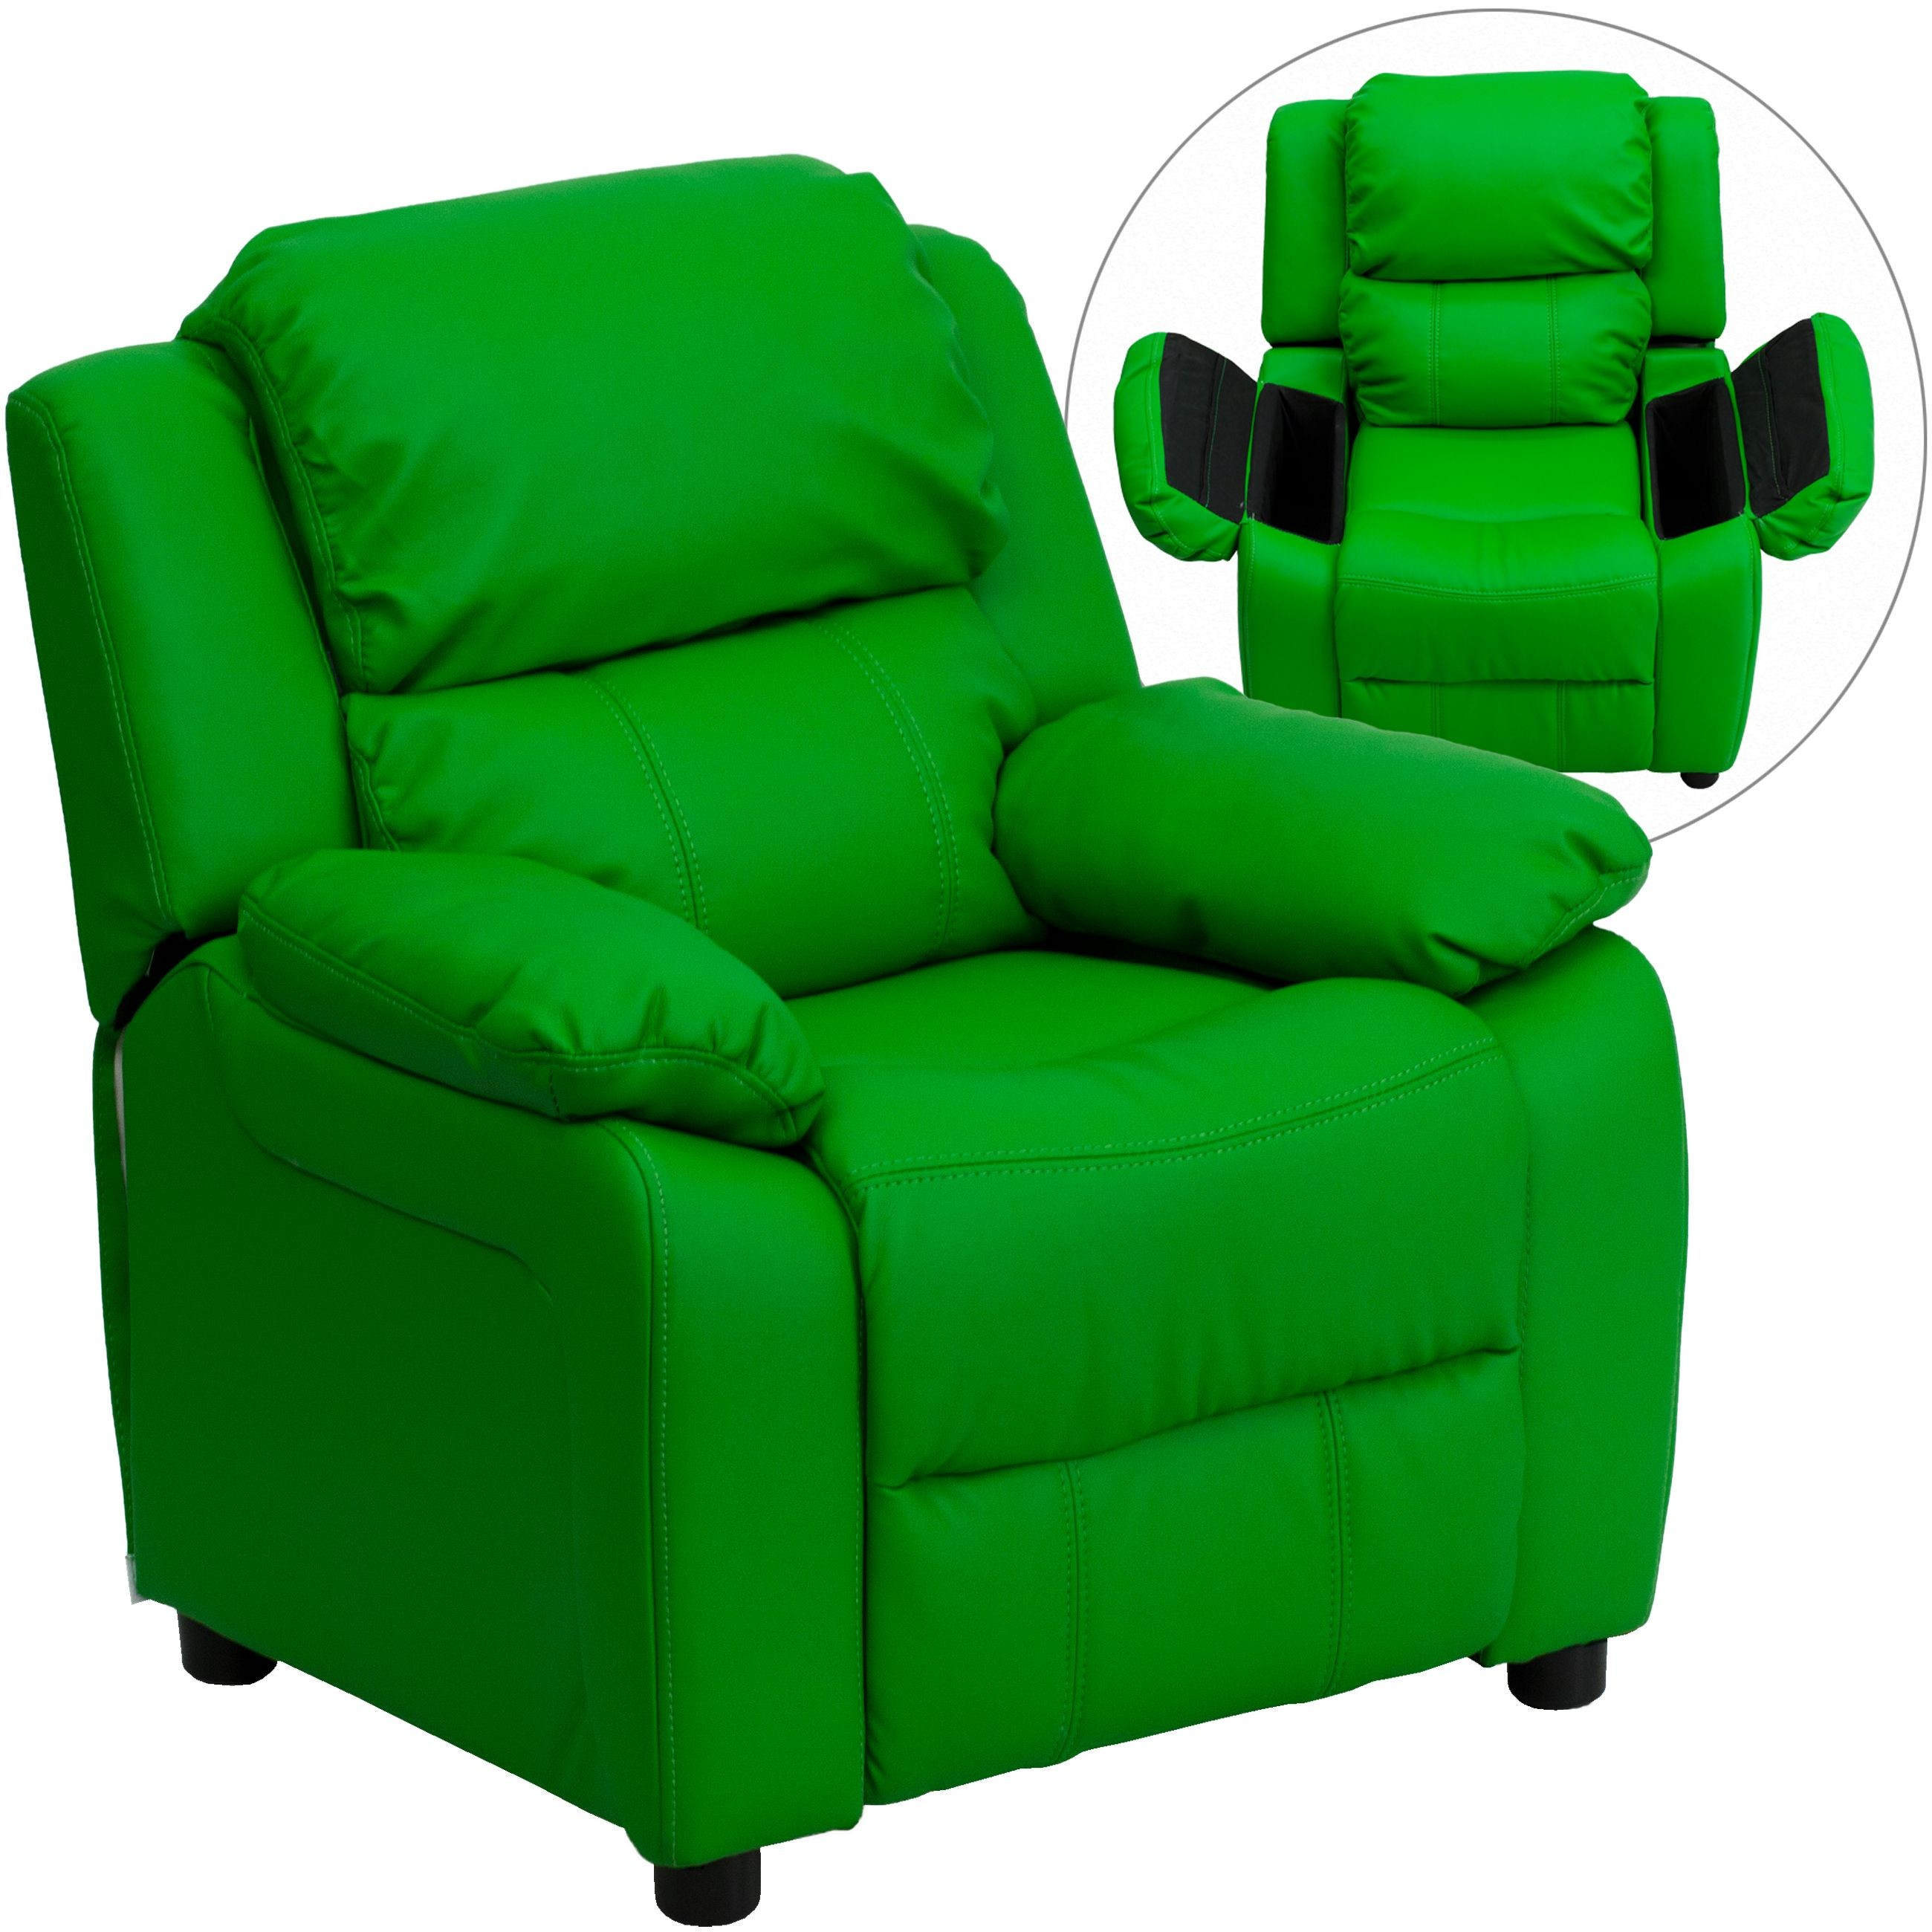 Deluxe Heavily Padded Contemporary Green Vinyl Kids Recliner with Storage Arms